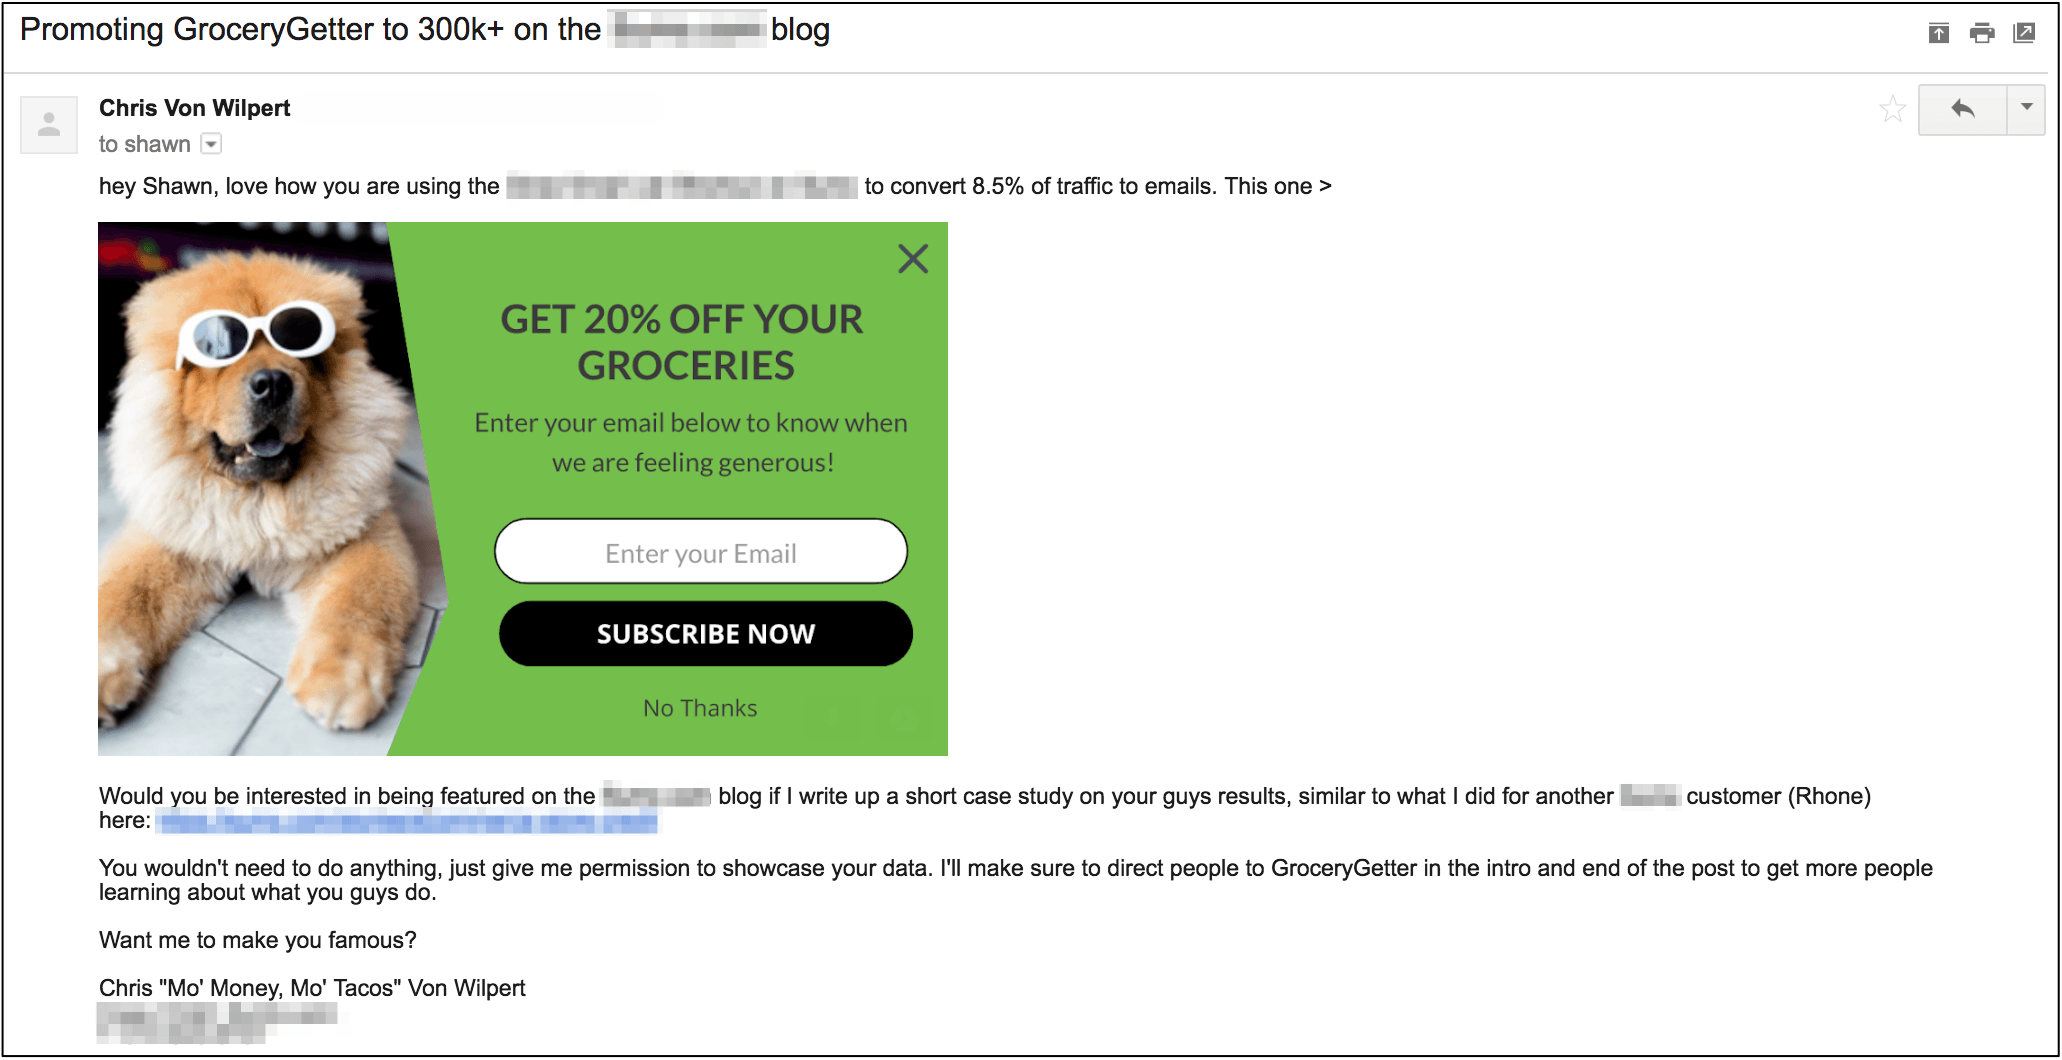 email sent by Chris Von Wilpert to Shawn about promoting GroceryGetter on the Sumo blog